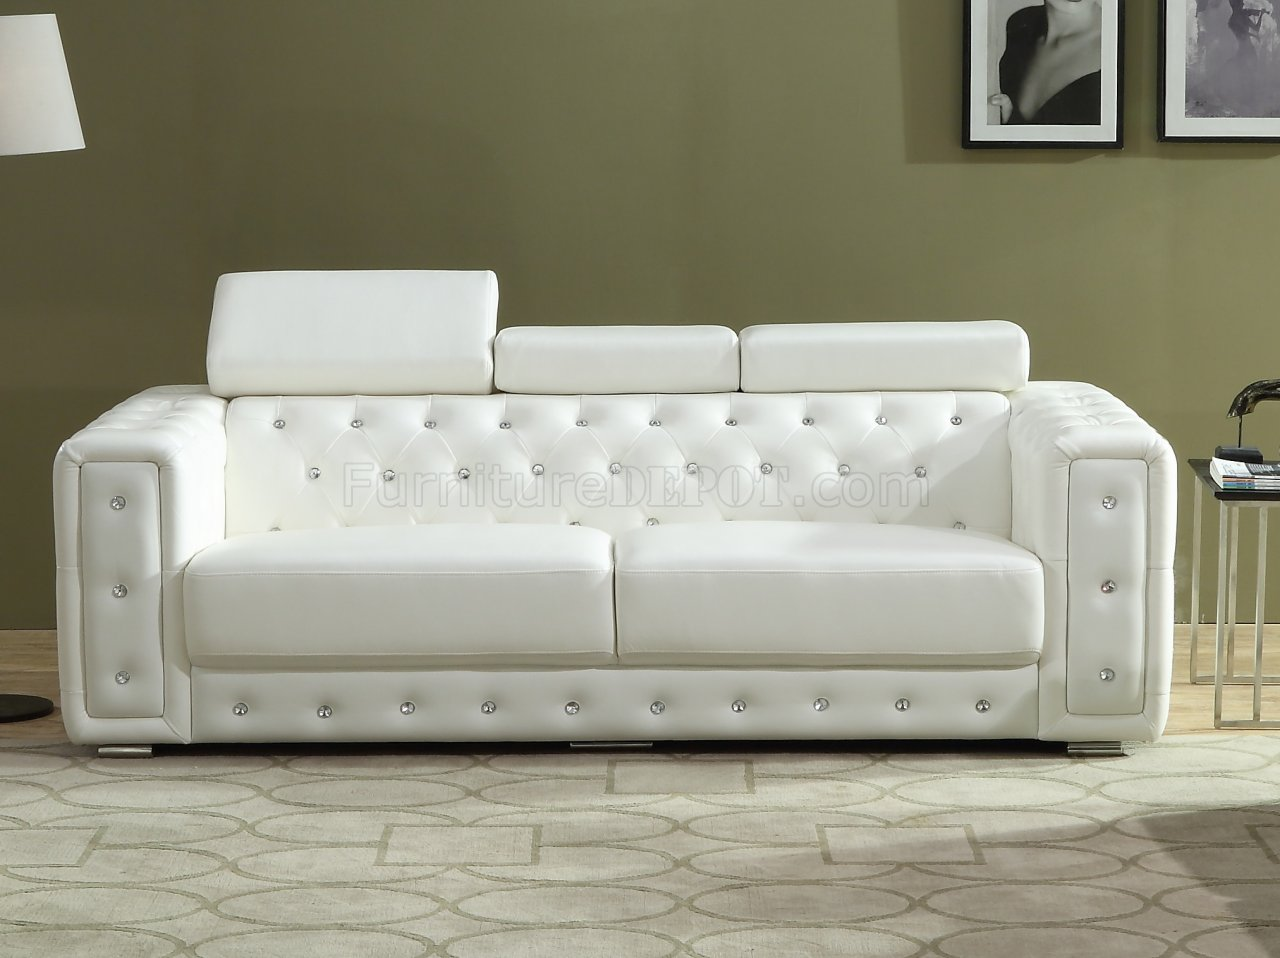 leather conditioner sofa leg rest care products for sofas